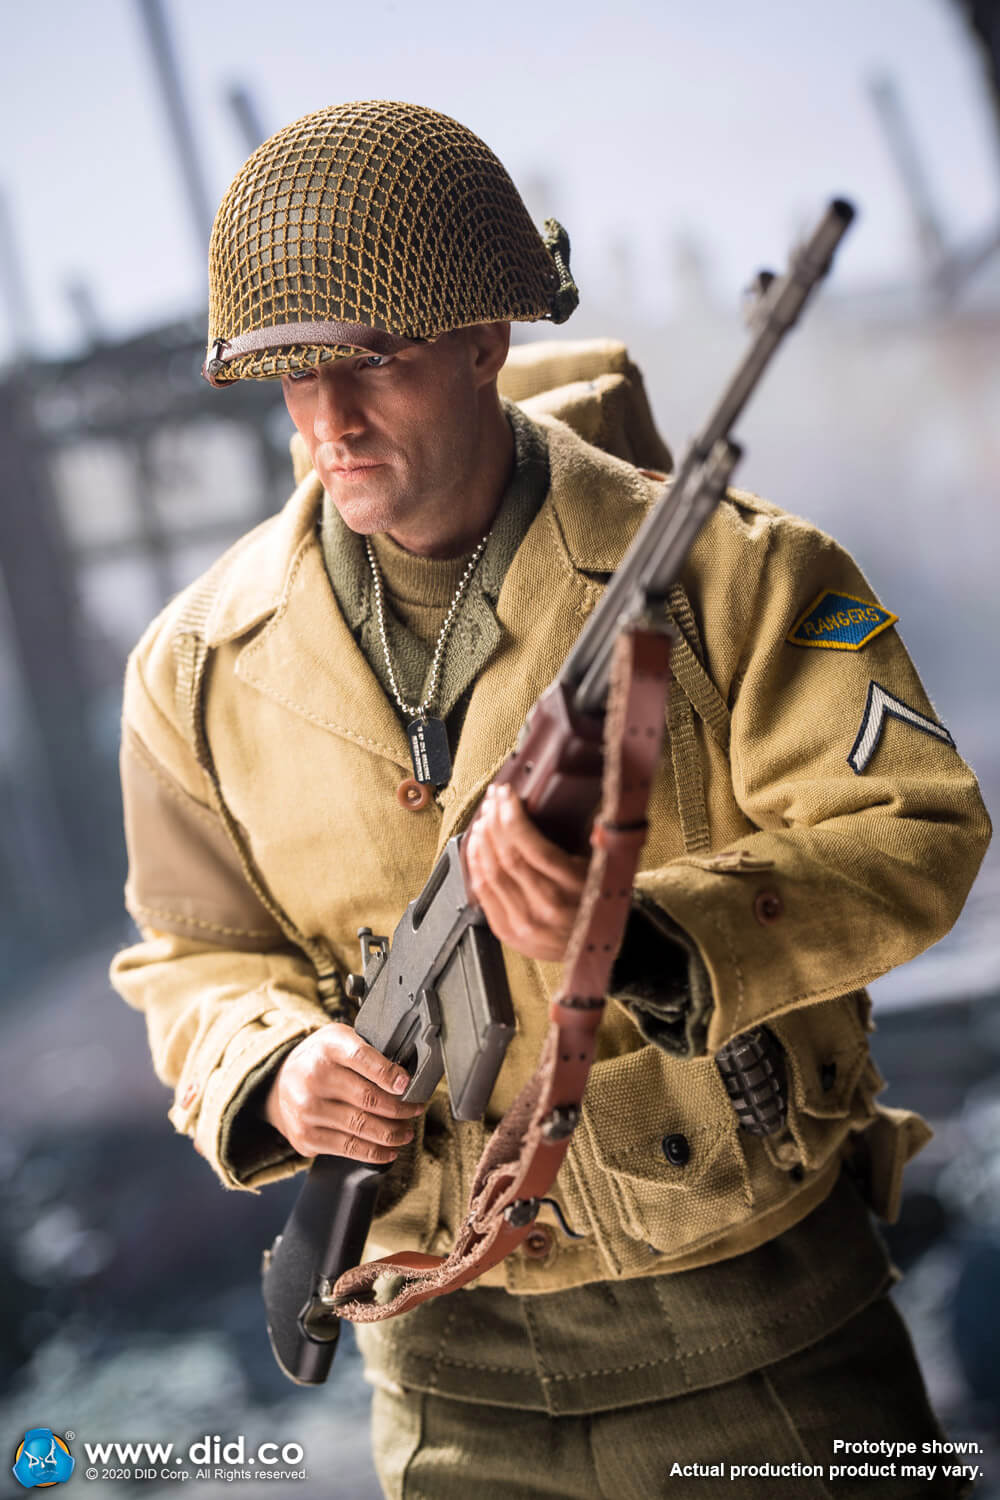 did - NEW PRODUCT: DiD: A80141 WWII US 2nd Ranger Battalion Private First Class Reiben 1/6 scale figure Us-2nd24